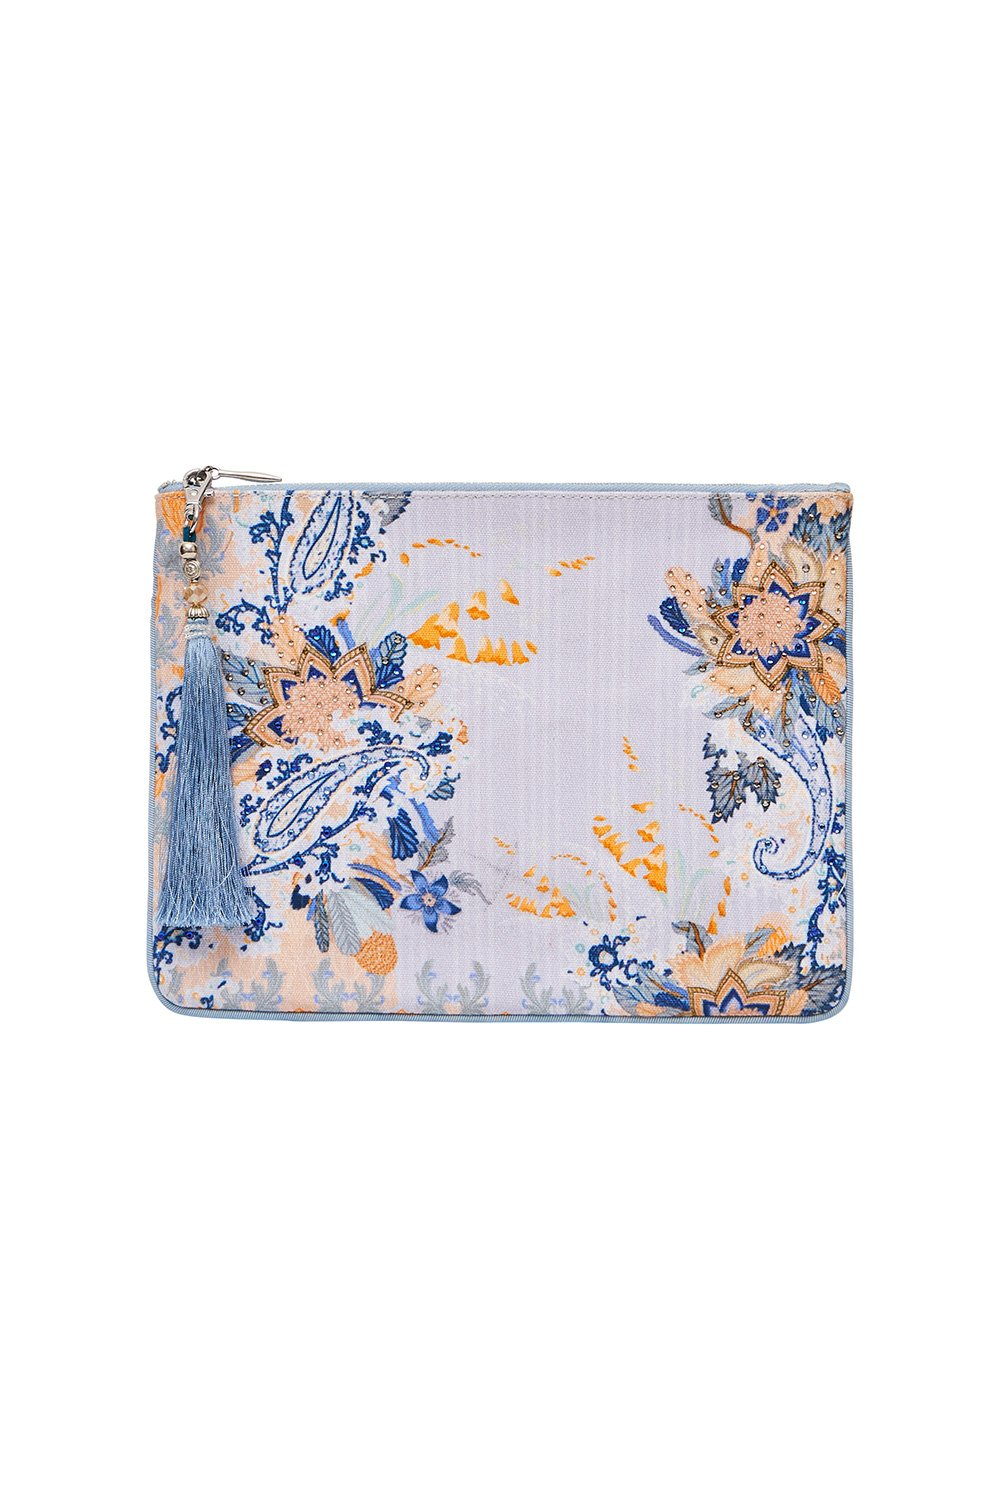 SMALL CANVAS CLUTCH FRASER FANTASIA